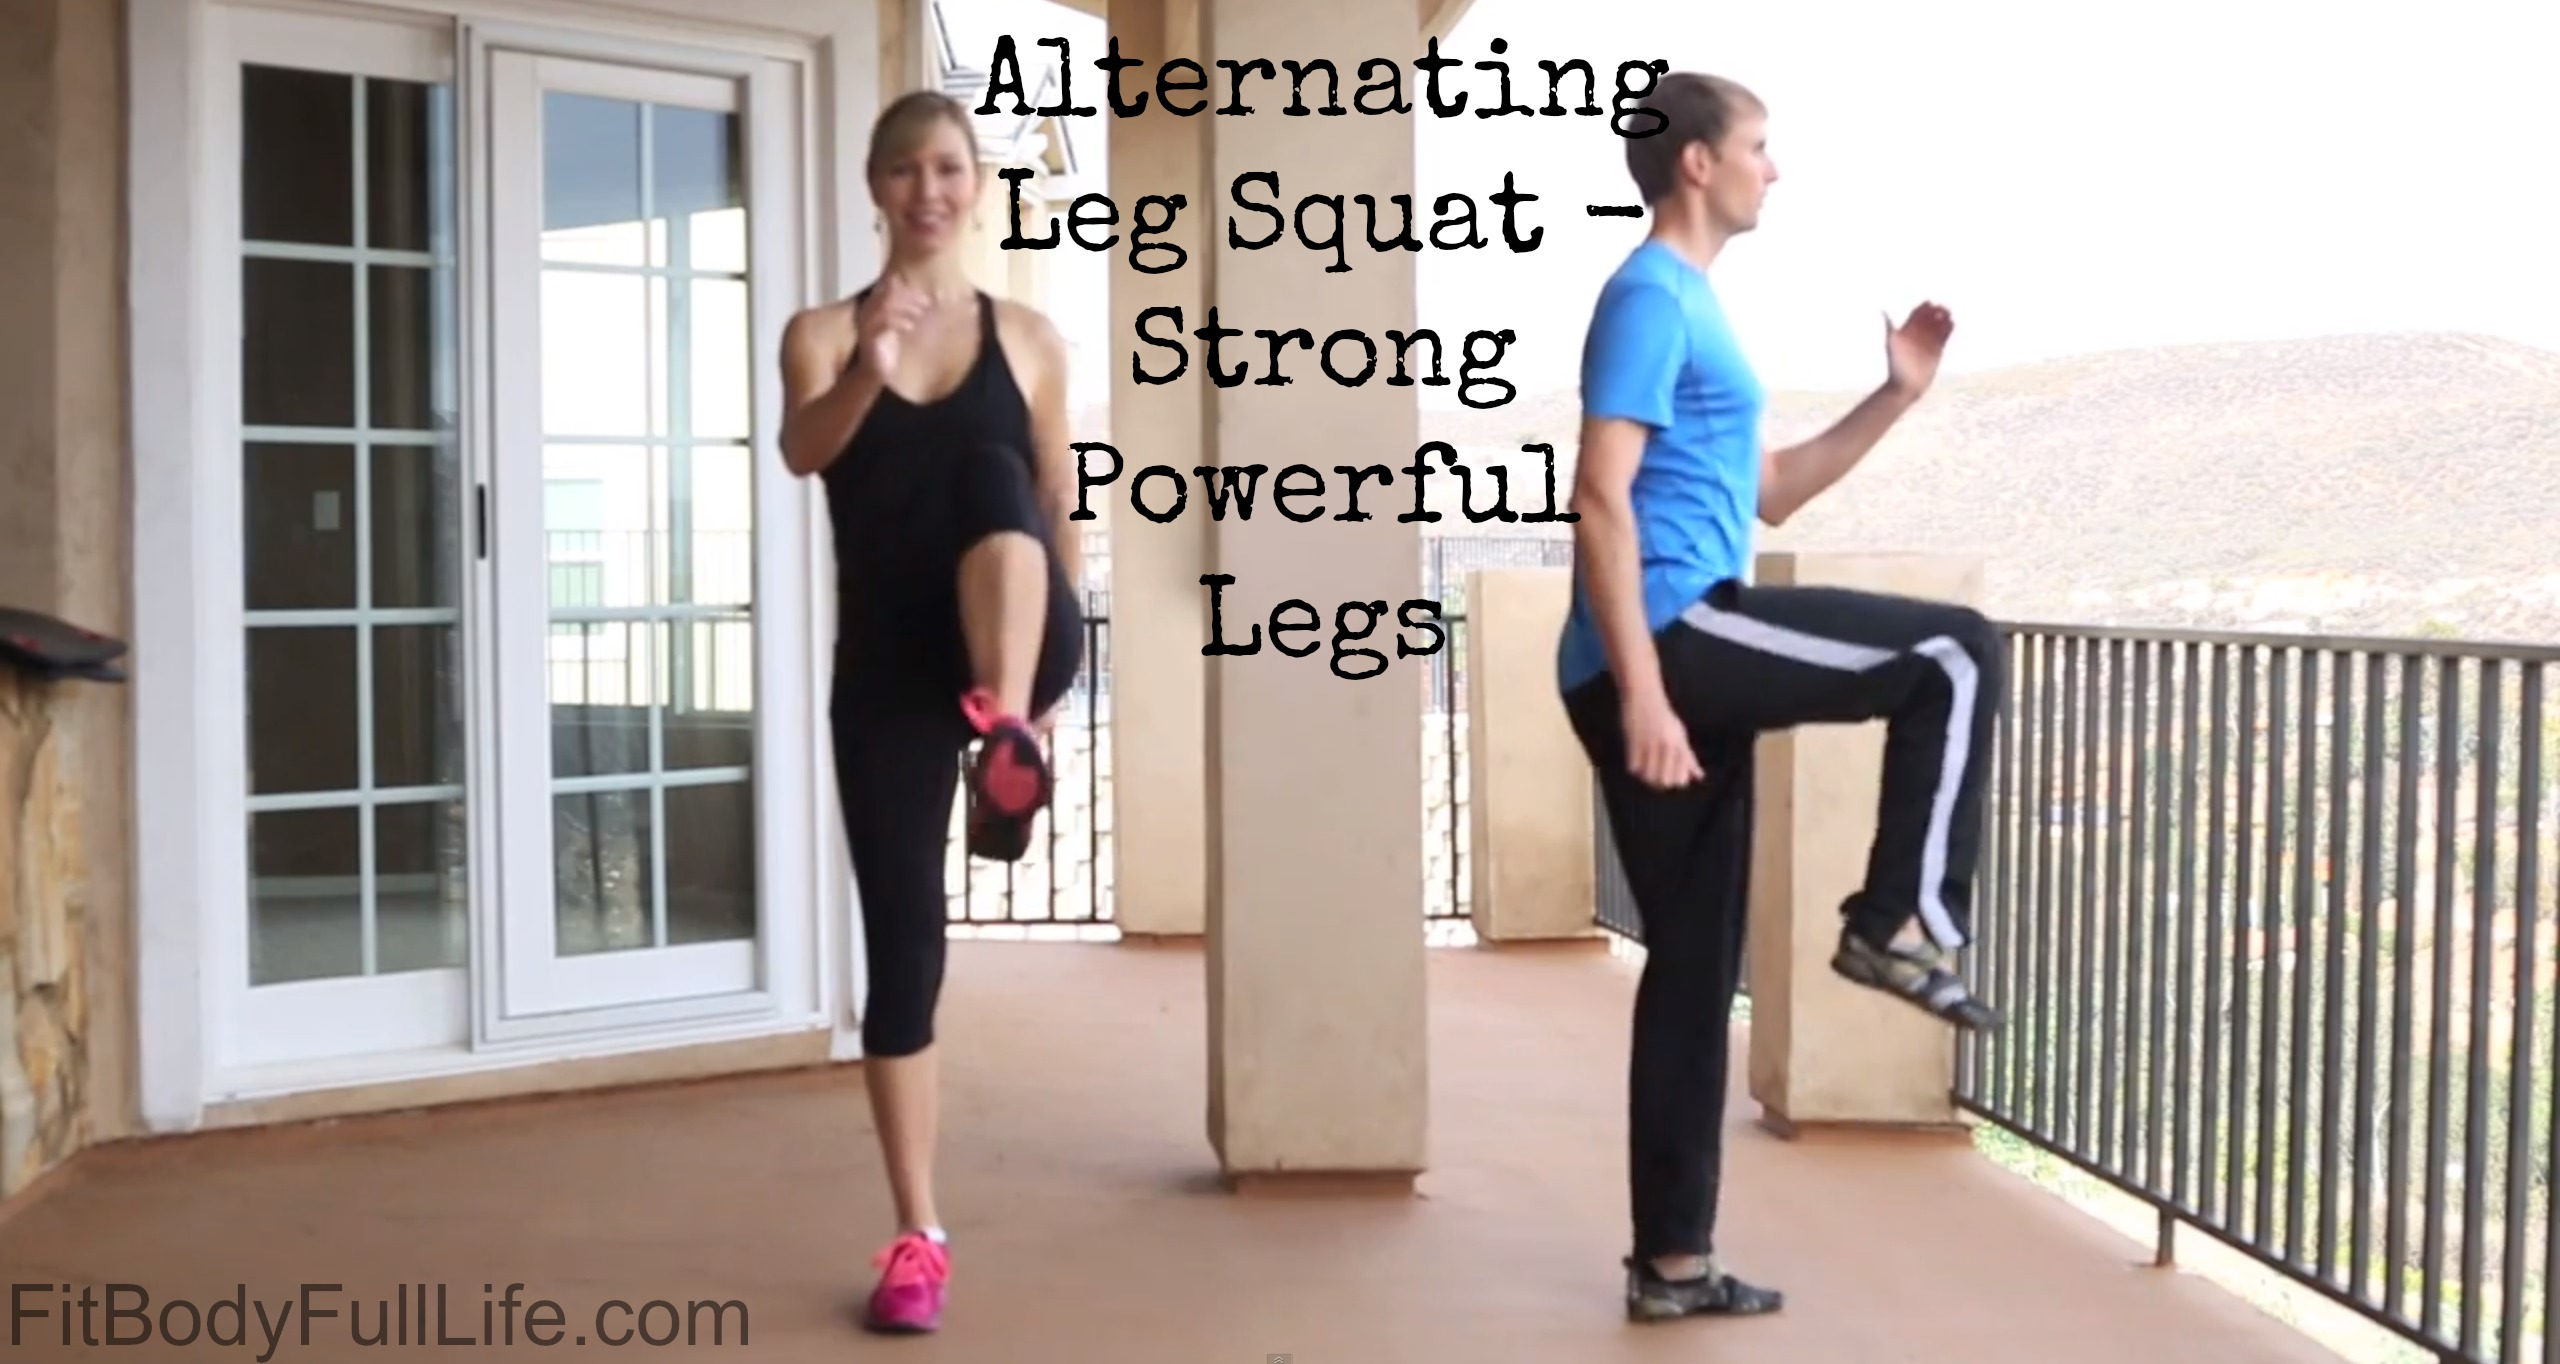 Alternating Leg Squat - Strong Powerful Legs